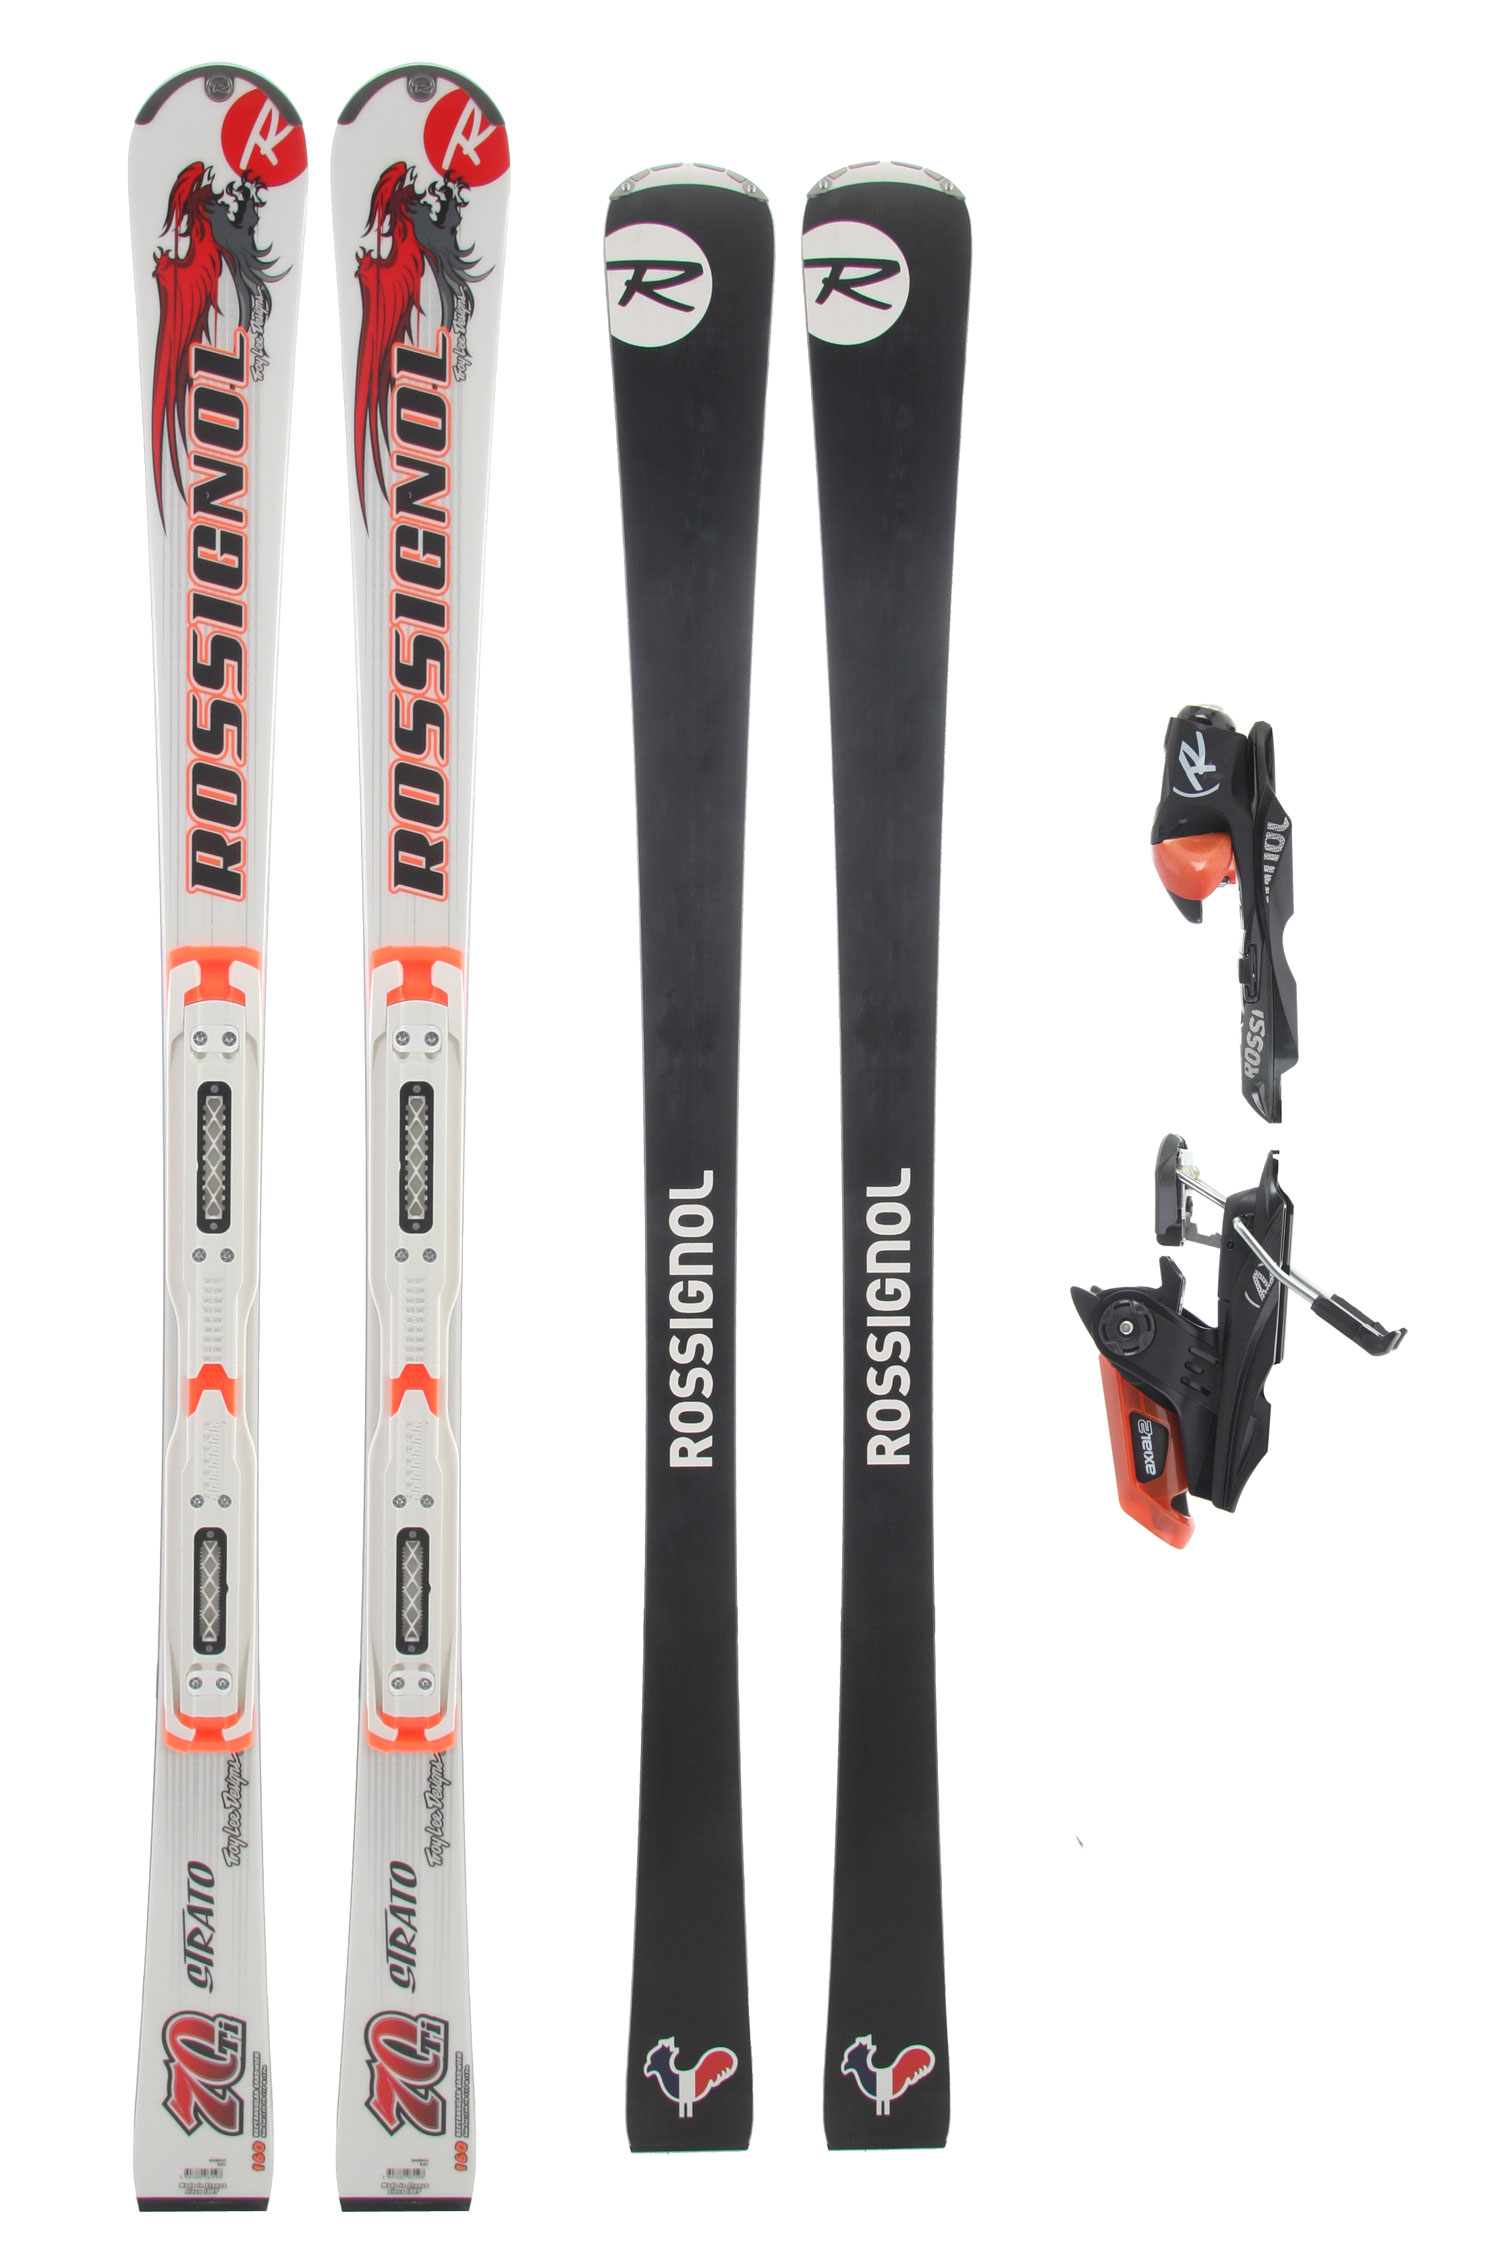 Ski No-holds-barred, WC sandwich construction with Oversize technology to produce the ultimate aggressive frontside, short-turn fall-line ripper. Technical skiers, seeking a powerful and high-performance classic construction ski with a modern, all-mountain sidecut will crave the perfect blend of power and agility of the 70 TI. Troy Lee Designs created the cutting edge artwork for the Strato 70 TI. 100% FrontsideKey Features of the Rossignol Strato 70 LTD TI Tpi2 Skis: Program: 100% PISTE Structure: FIBRO/ METAL Core: WOOD VAS: VAS 100 Reinforcement: TITANAL Tip shape: METAL Shape: RECTANGULAR SANDWICH Key Features of the Rossignol Axial 120S Bindings: DIN: 3.5-12 Toe piece: DUAL ACTION III Glider: AXITEC2 Heel piece: AXIUM II Height interface: TPI2 Toe lateral elasticity: 45 Heel vertical elasticity: 12 Brake width: 64-80mm Length adjustment: 265-377 - $524.95